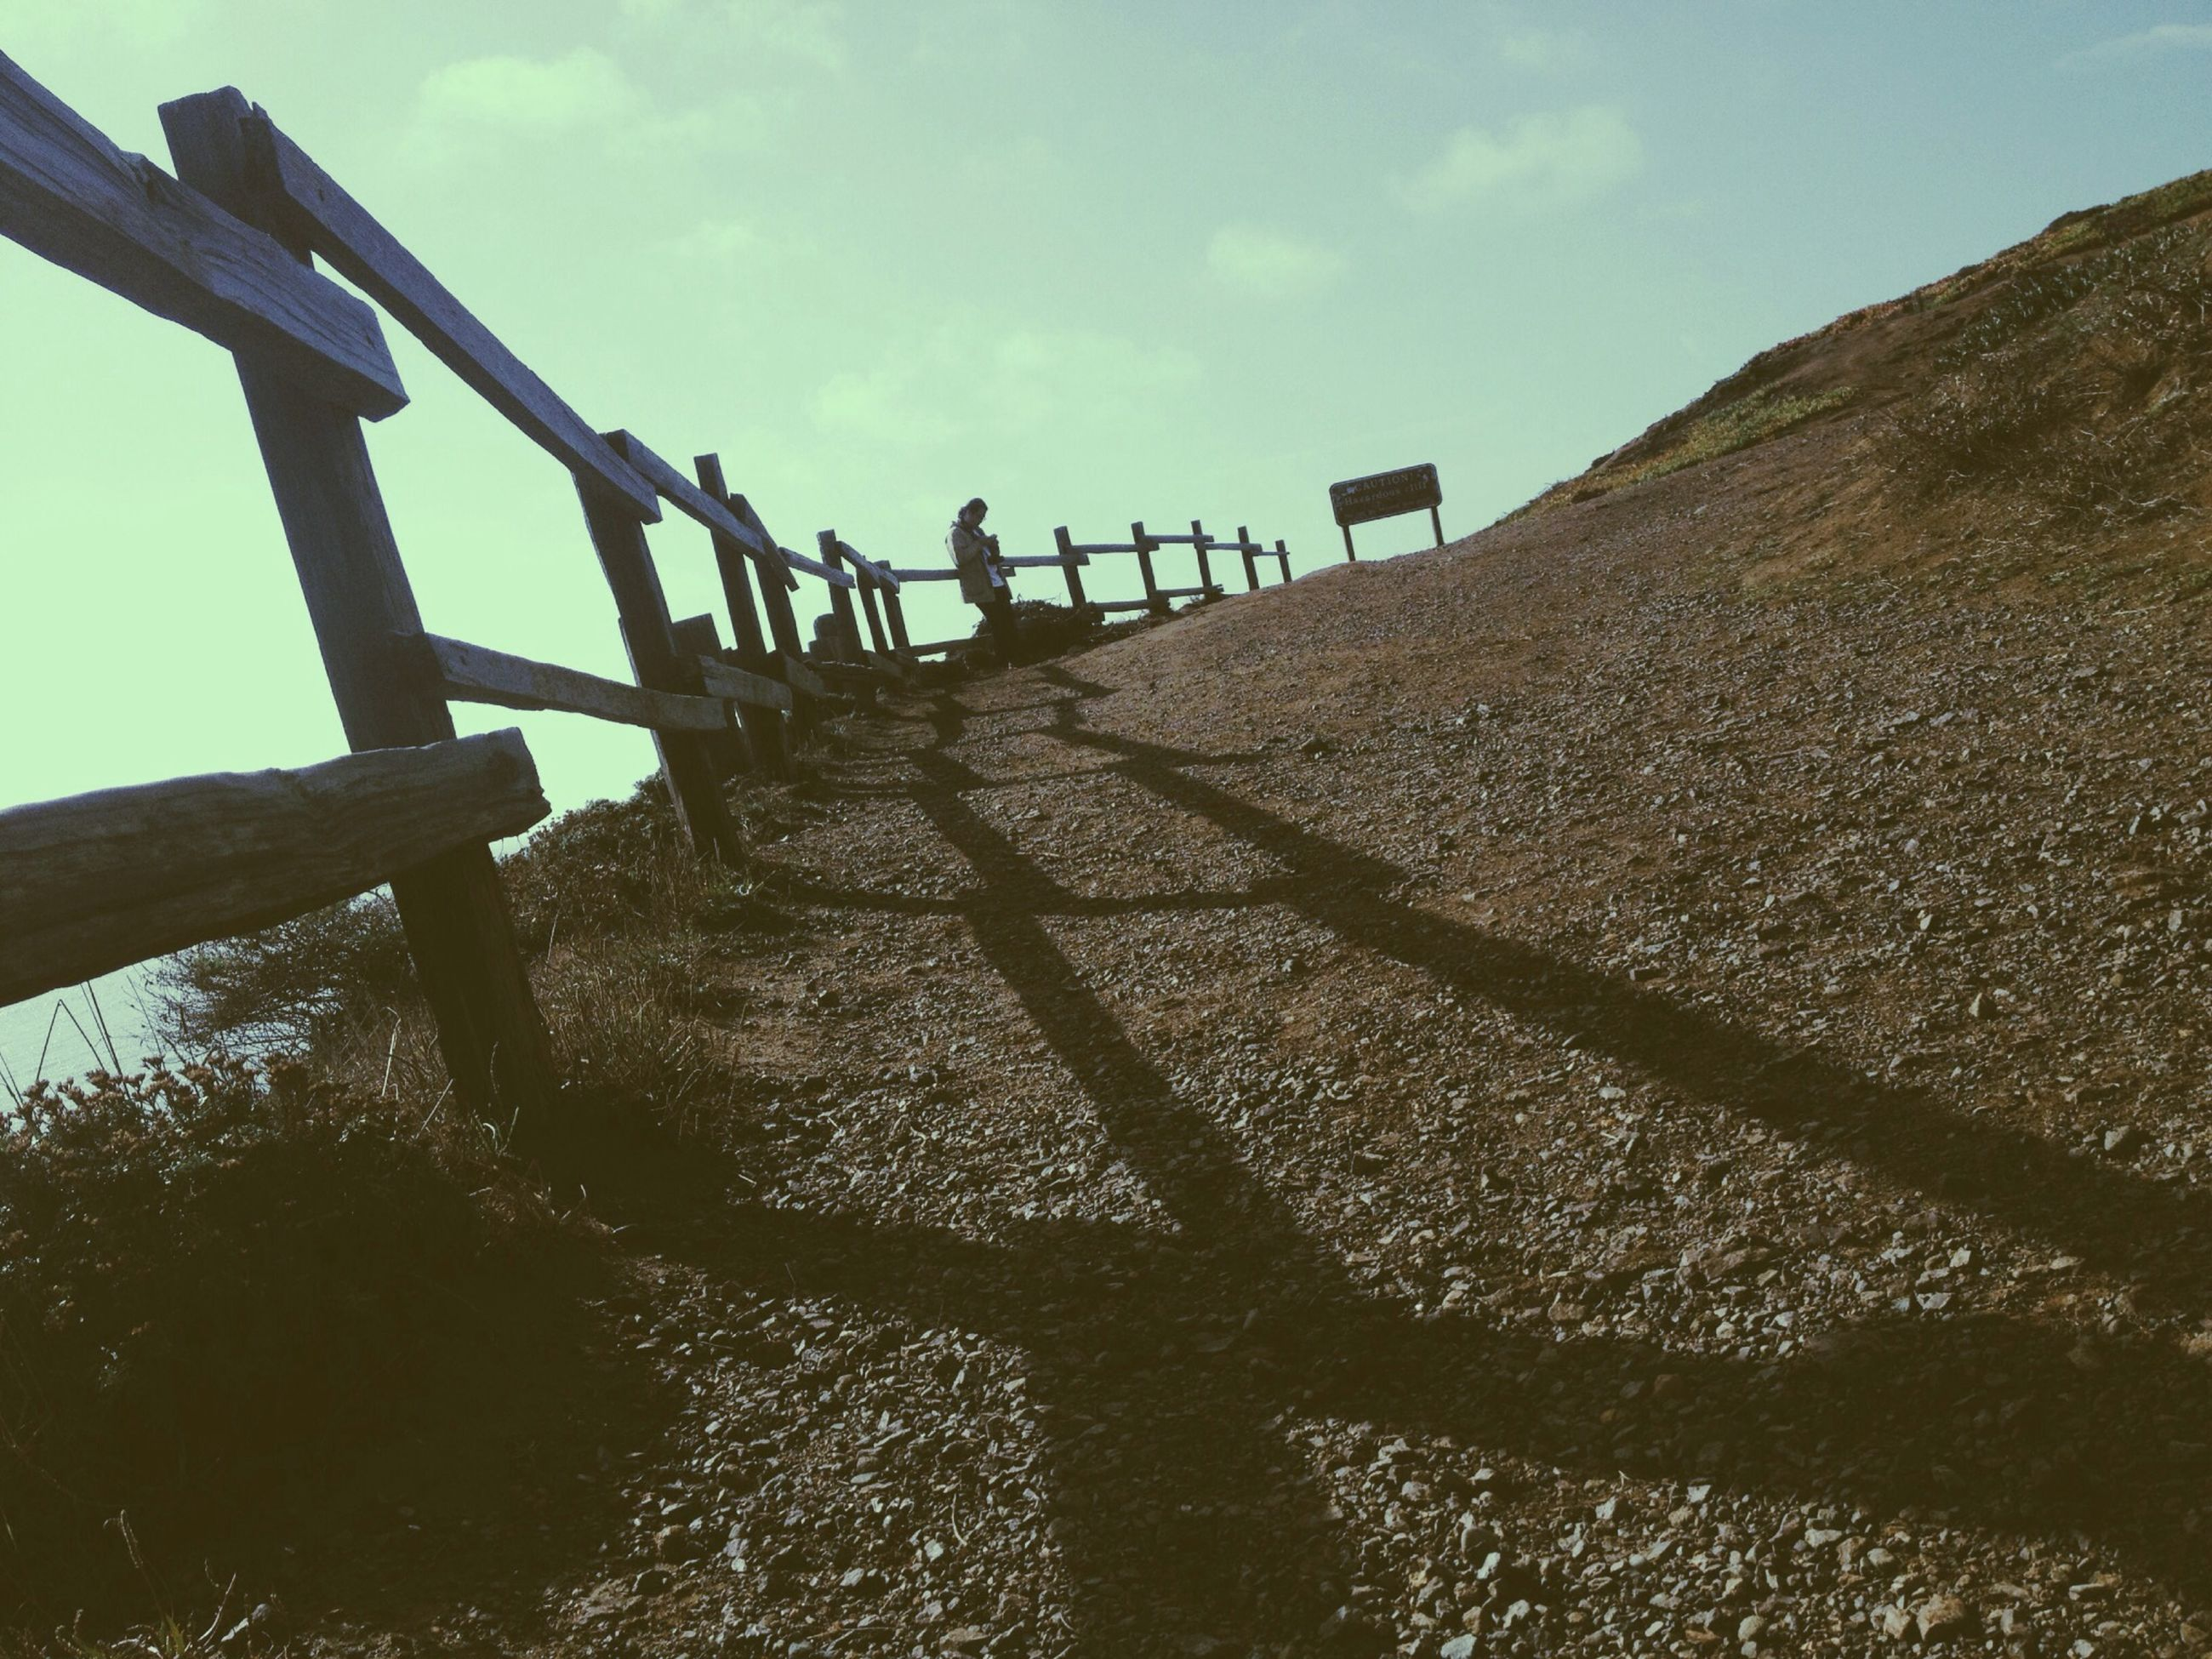 sky, water, railing, tranquility, low angle view, sunlight, sea, wood - material, metal, nature, protection, fence, safety, tranquil scene, outdoors, day, no people, security, shadow, pier